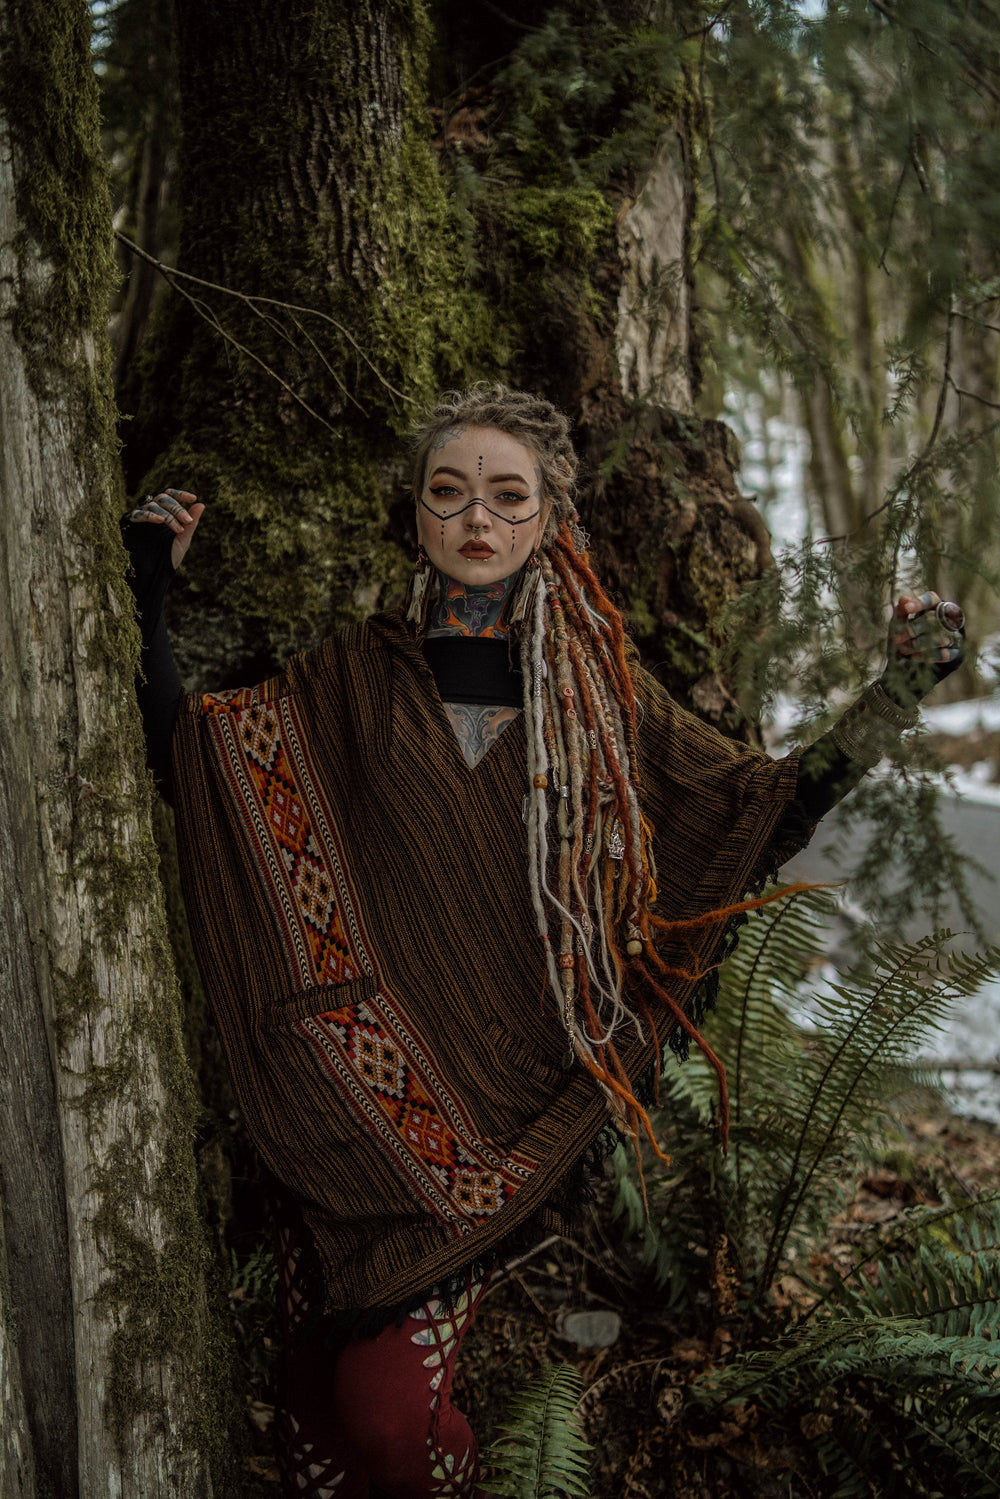 Hooded Wool Poncho Bronze, Tribal Cashmere Embroidery Pockets Gypsy Fairy Boho Festival Alternative Funky Nomadic Primitive Hippie AJJAYA